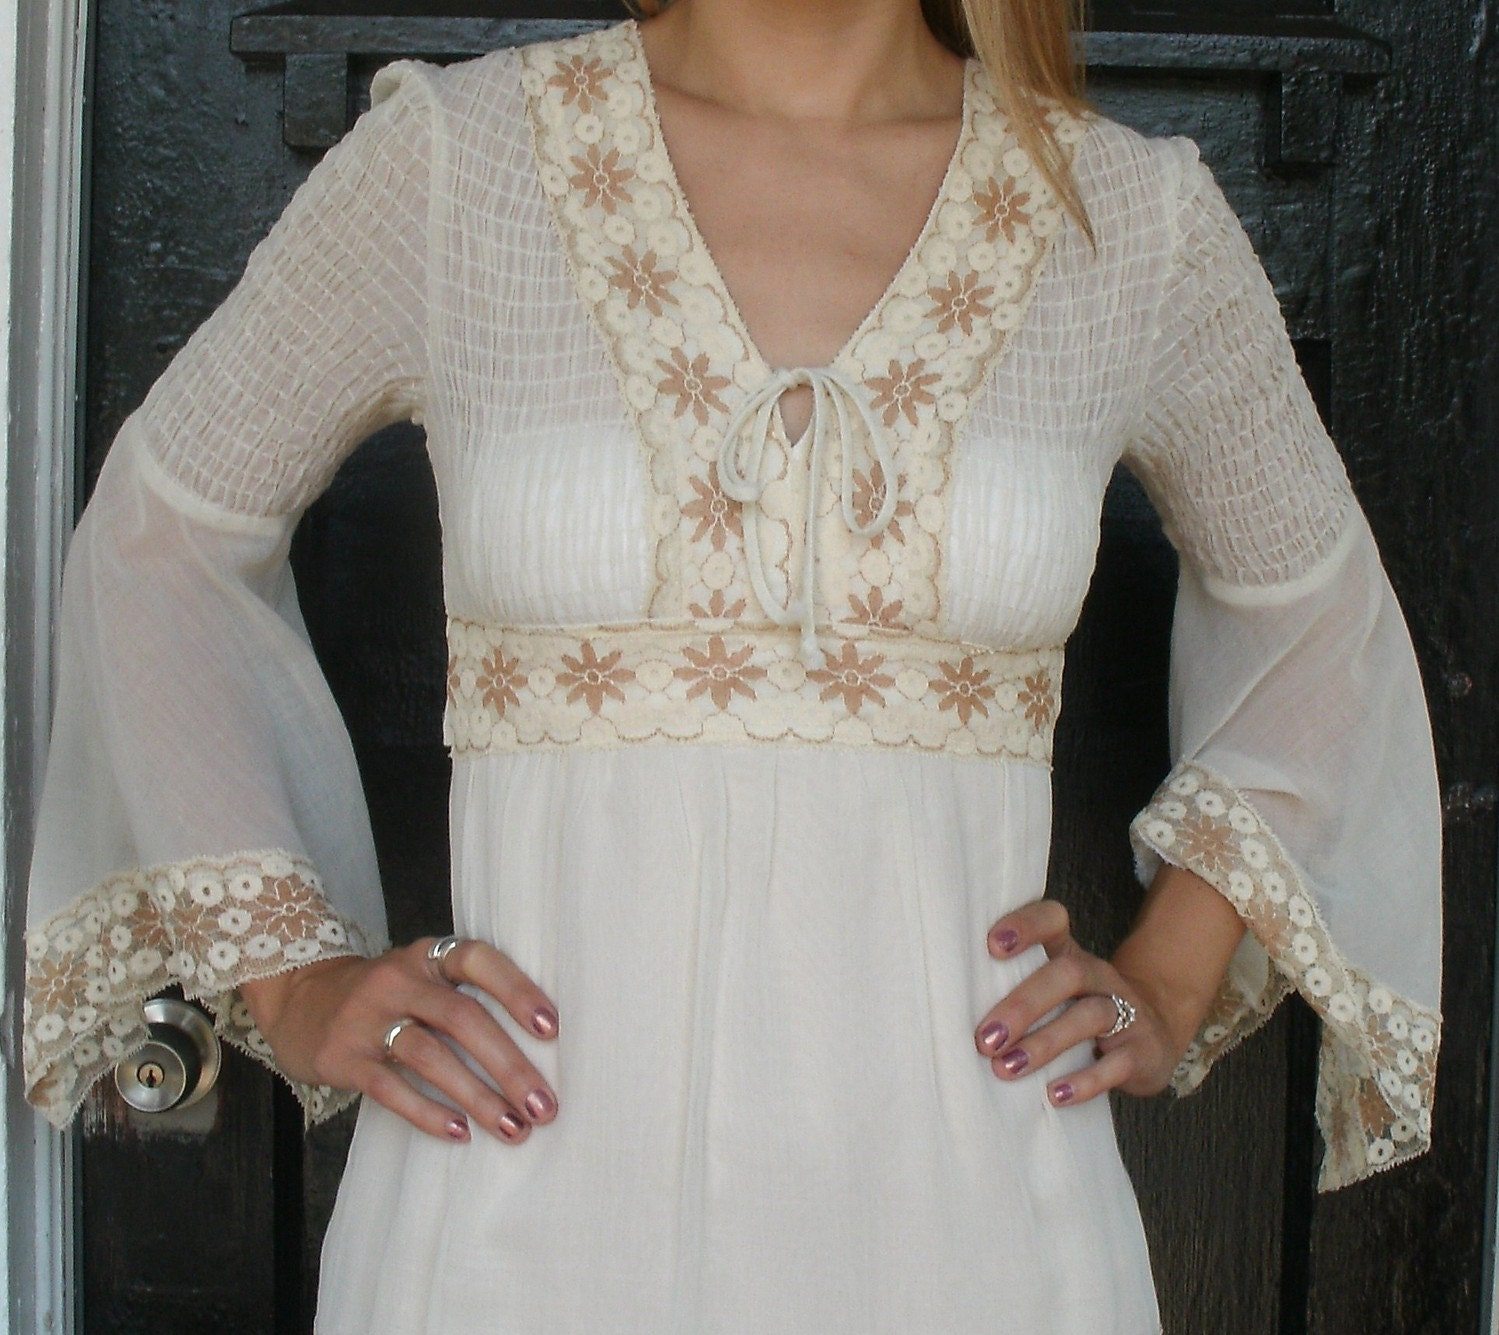 Wedding Dresses With Bell Sleeves: Vintage 1970s Boho Ethereal Bell Sleeve Wedding Dress By